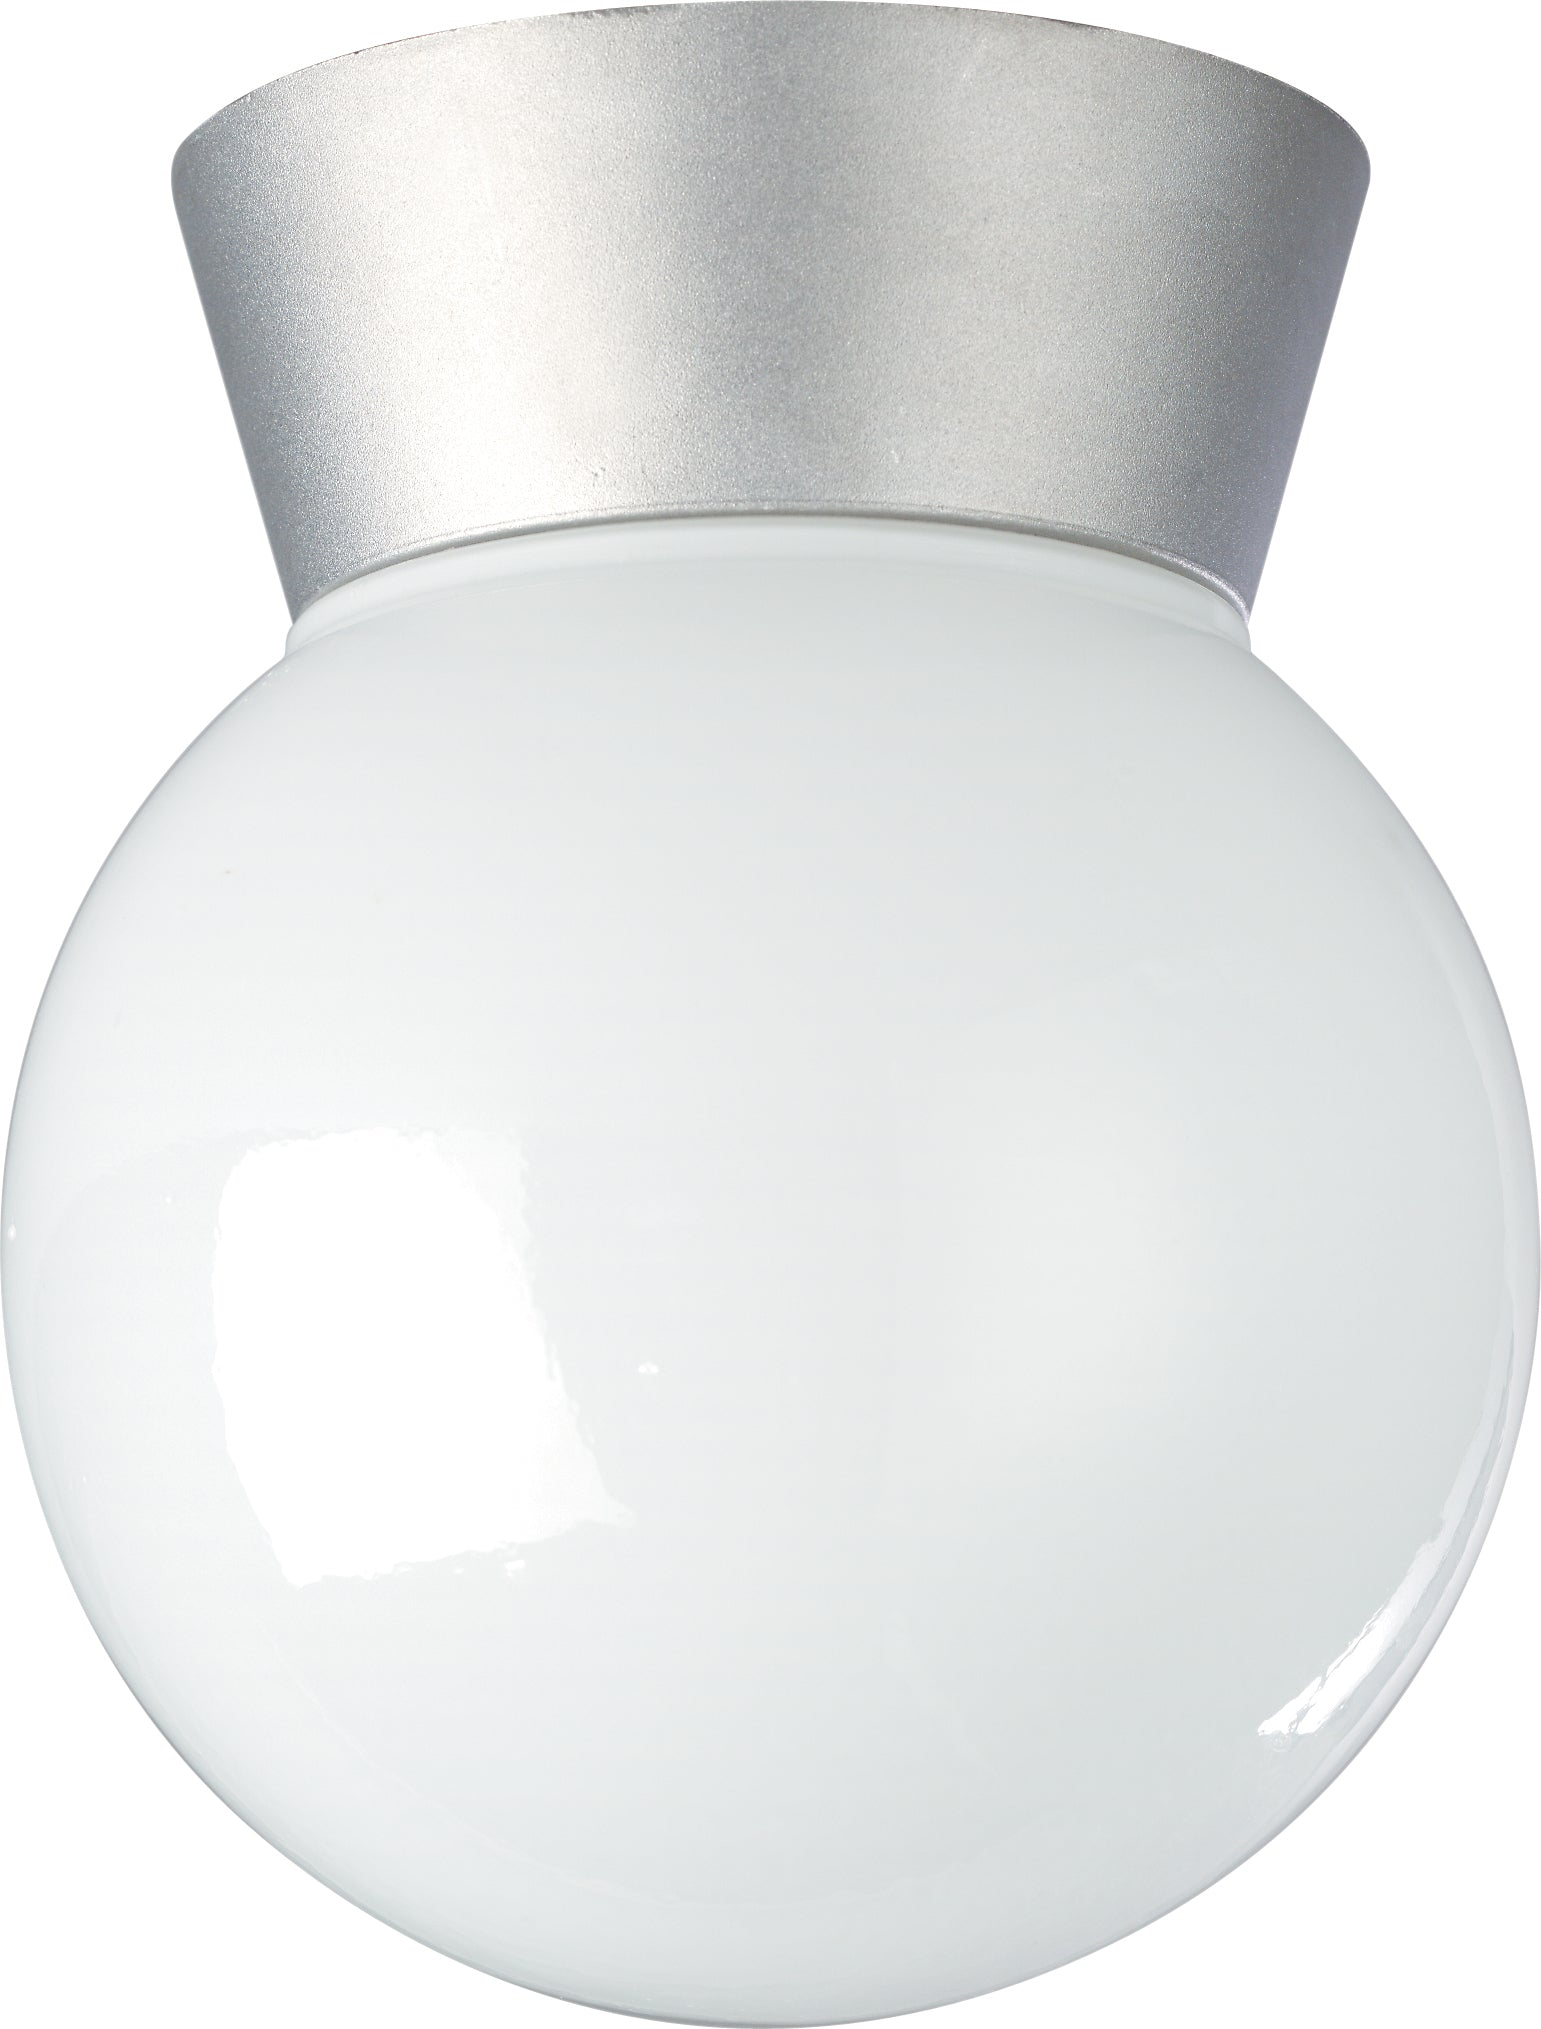 "Nuvo 1-Light 8"" Outdoor Ceiling Light w/ White Glass Globe in Satin Aluminum"